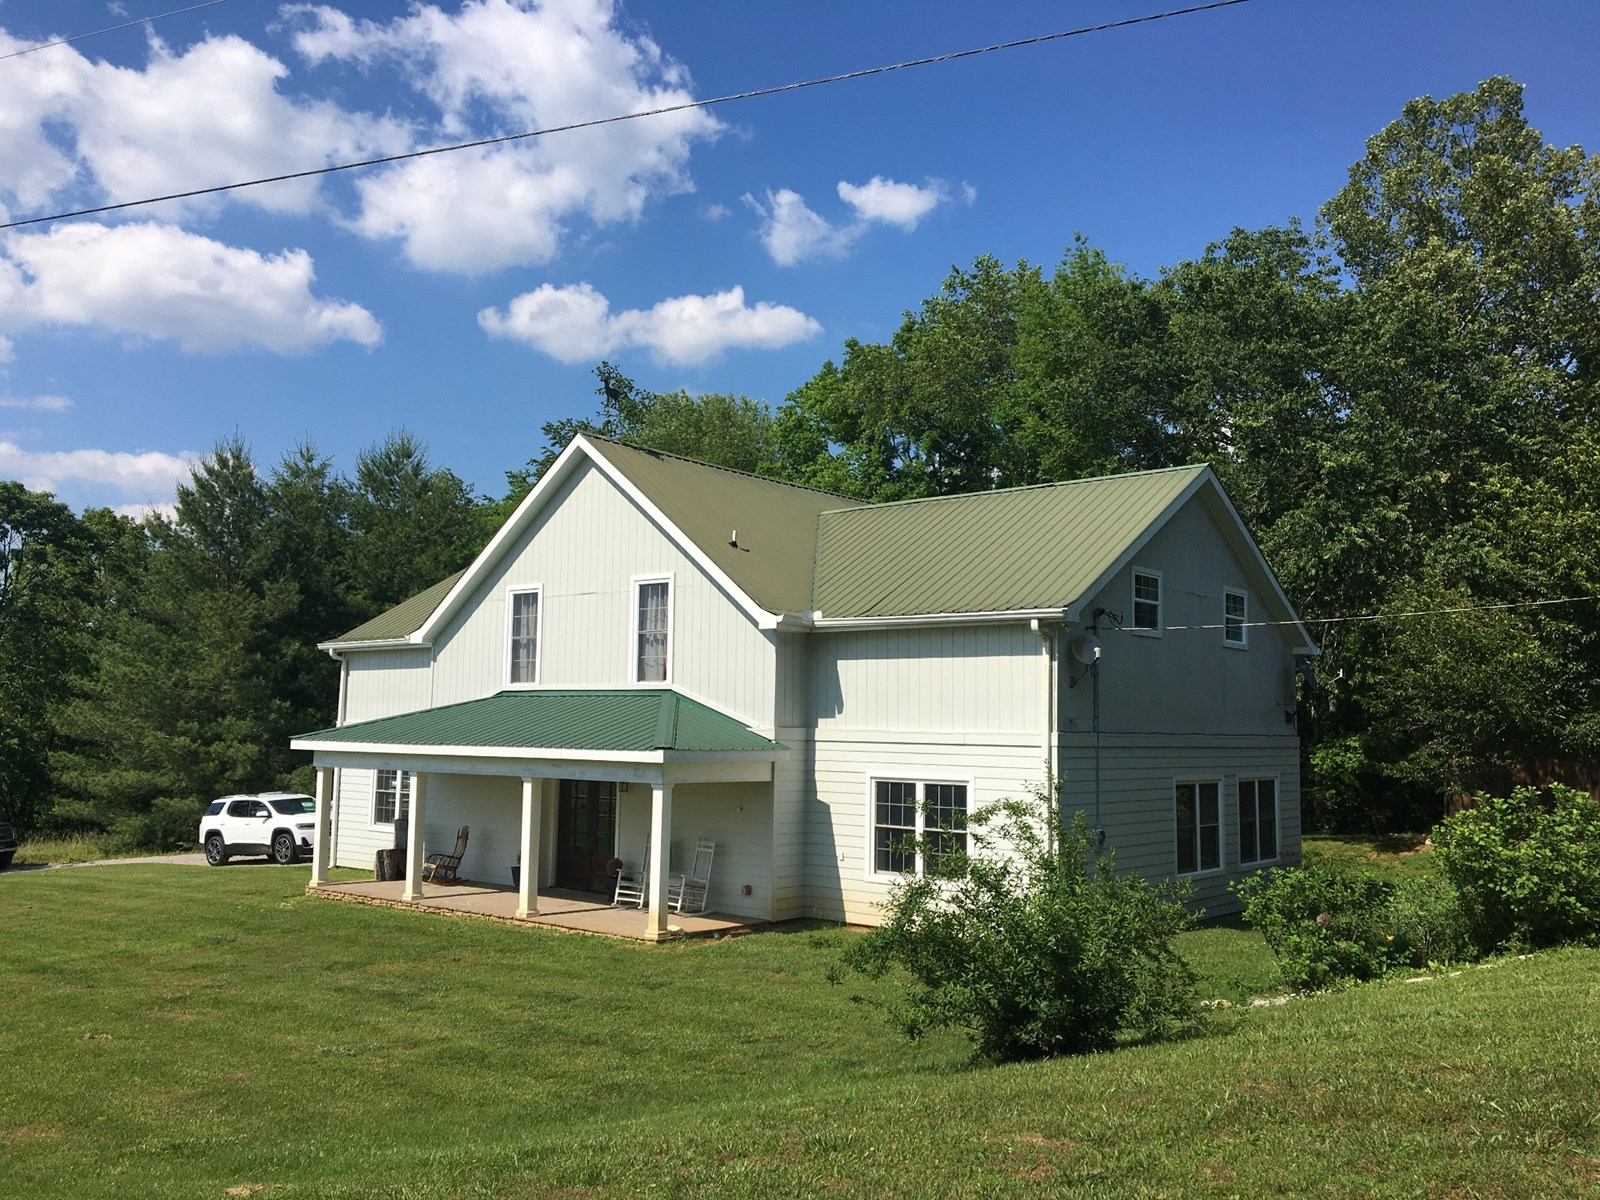 Tennessee Country Home and Acreage or sale!